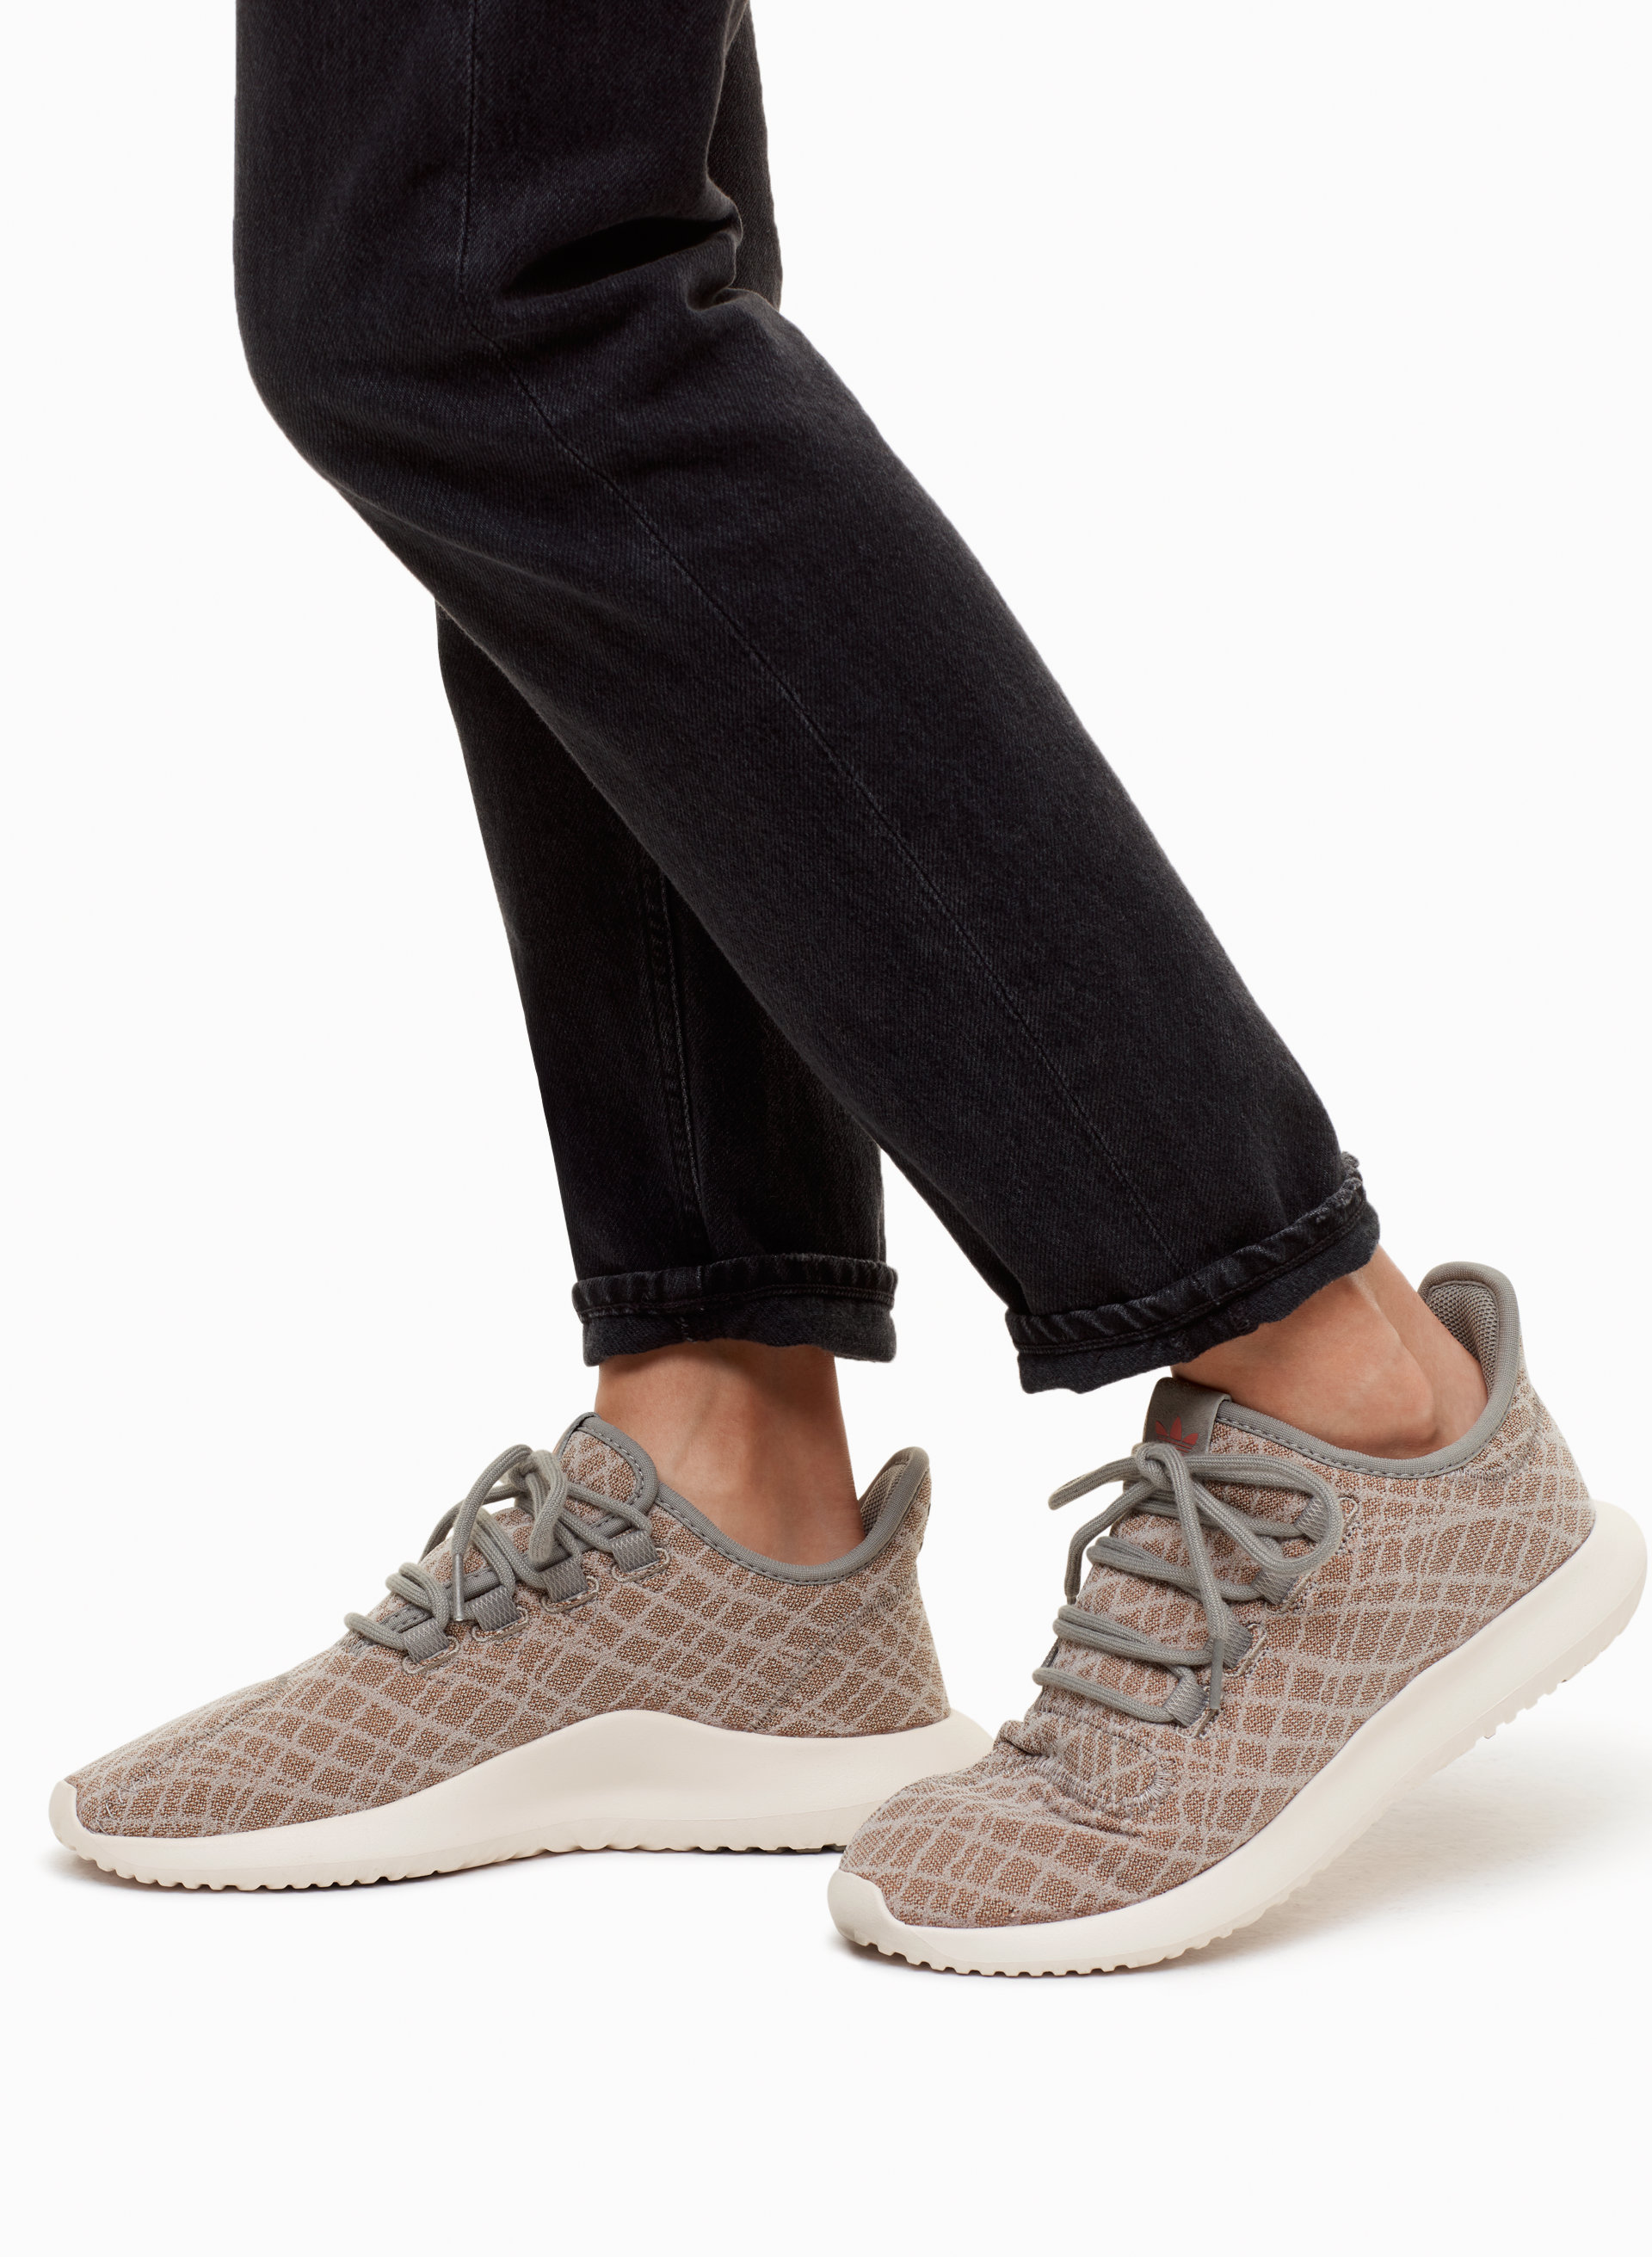 adidas TUBULAR SHADOW KNIT Grey adidas New Zealand